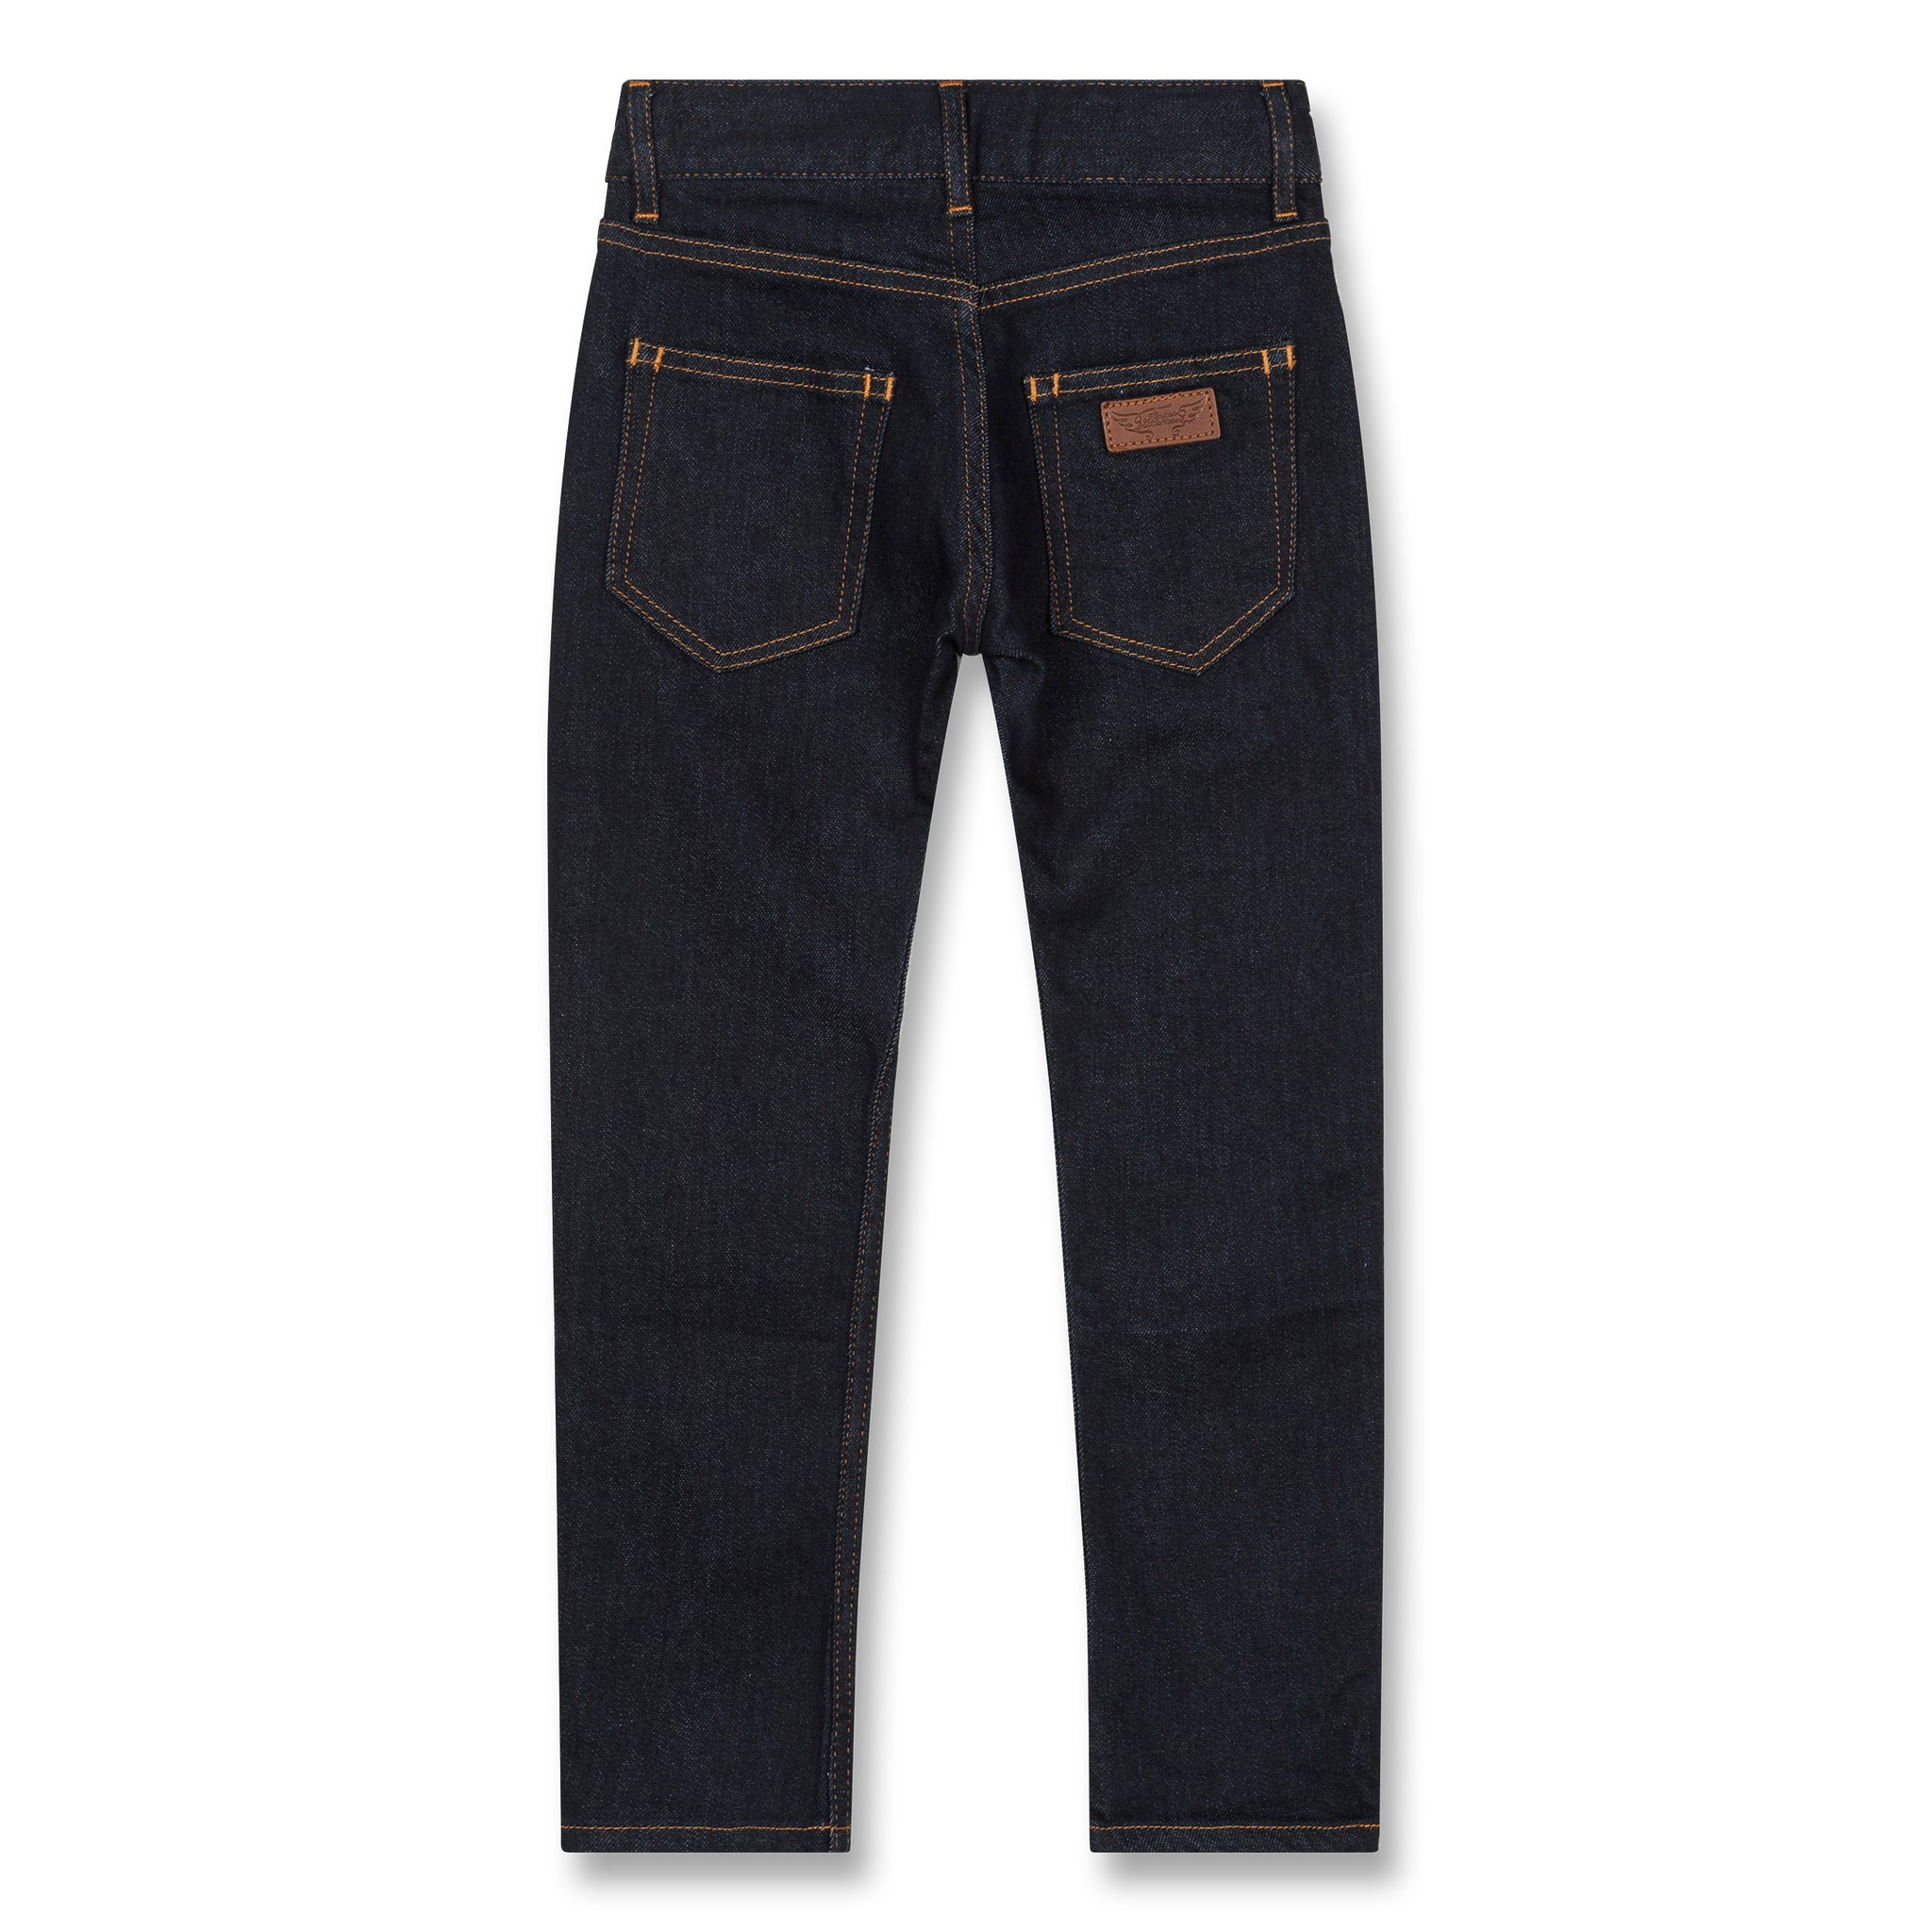 EWAN Raw Denim Blue - 5 Pocket Comfort Fit Jeans 3